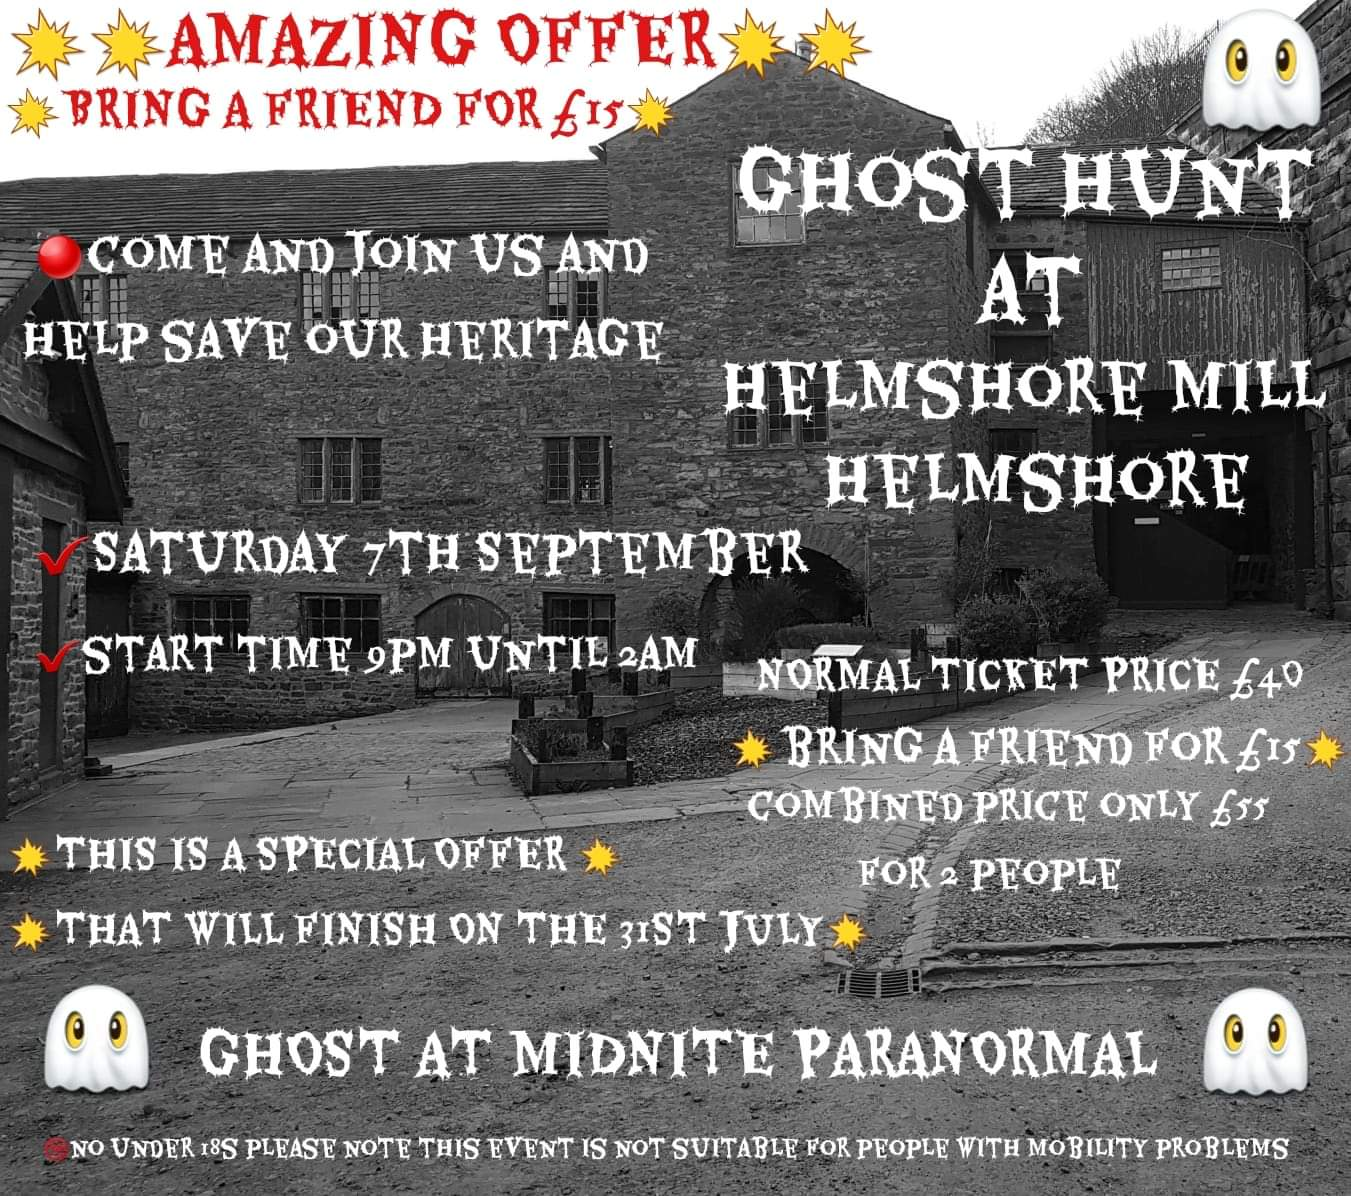 HELMSHORE TEXTILE MILL SATURDAY 7TH SEPTEMBER £40 ( BRING A FRIEND FOR £15